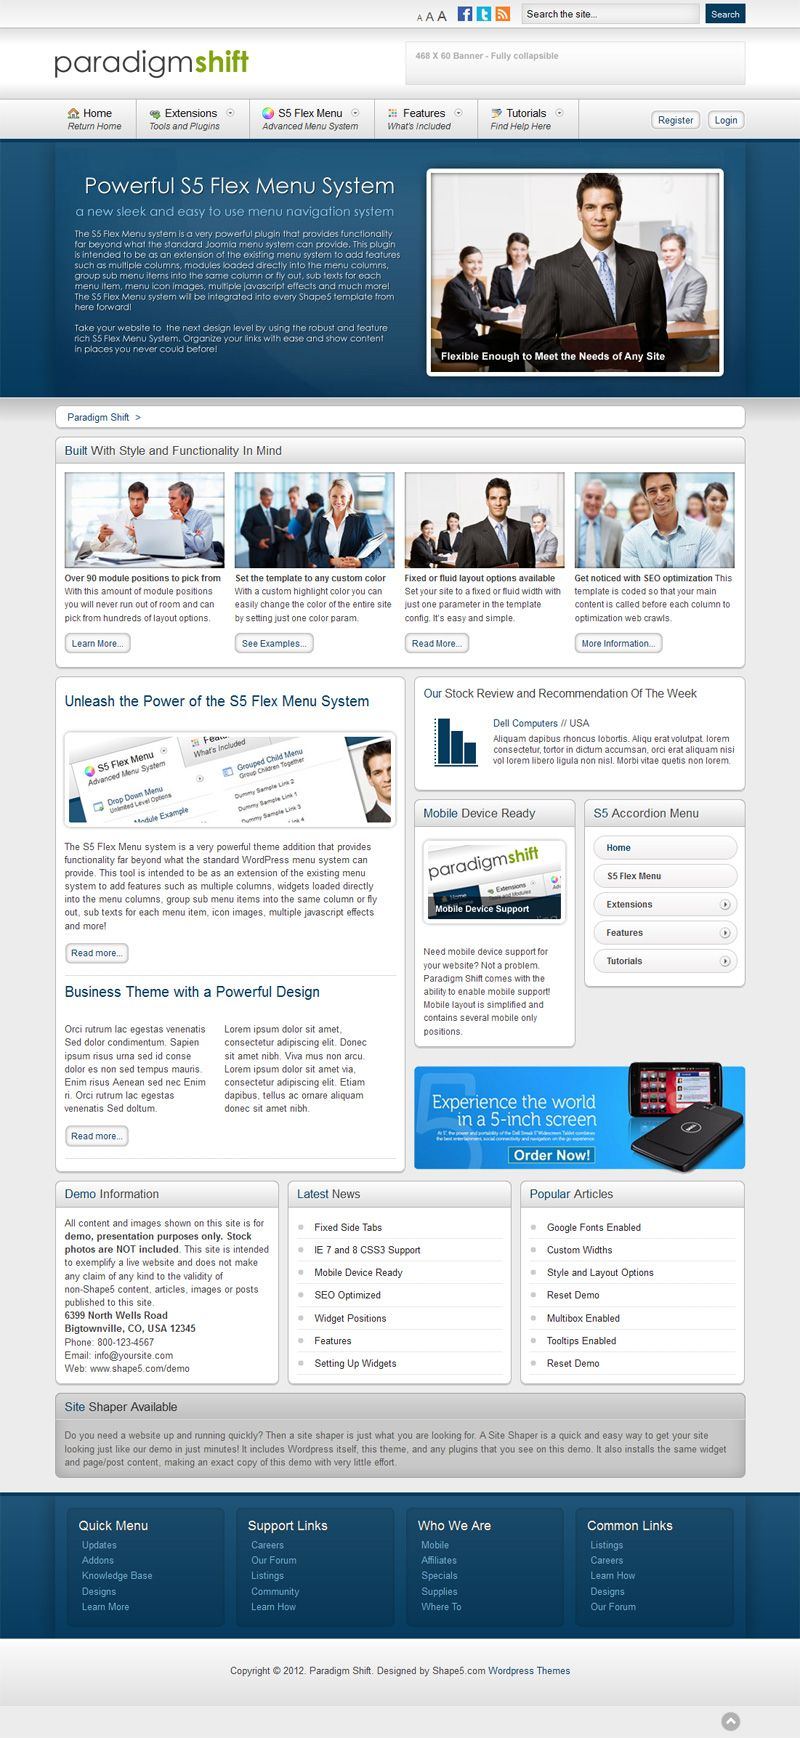 Paradigm Shift - Wordpress theme from Shape5 - designed for business & corporate websites. Clean design.